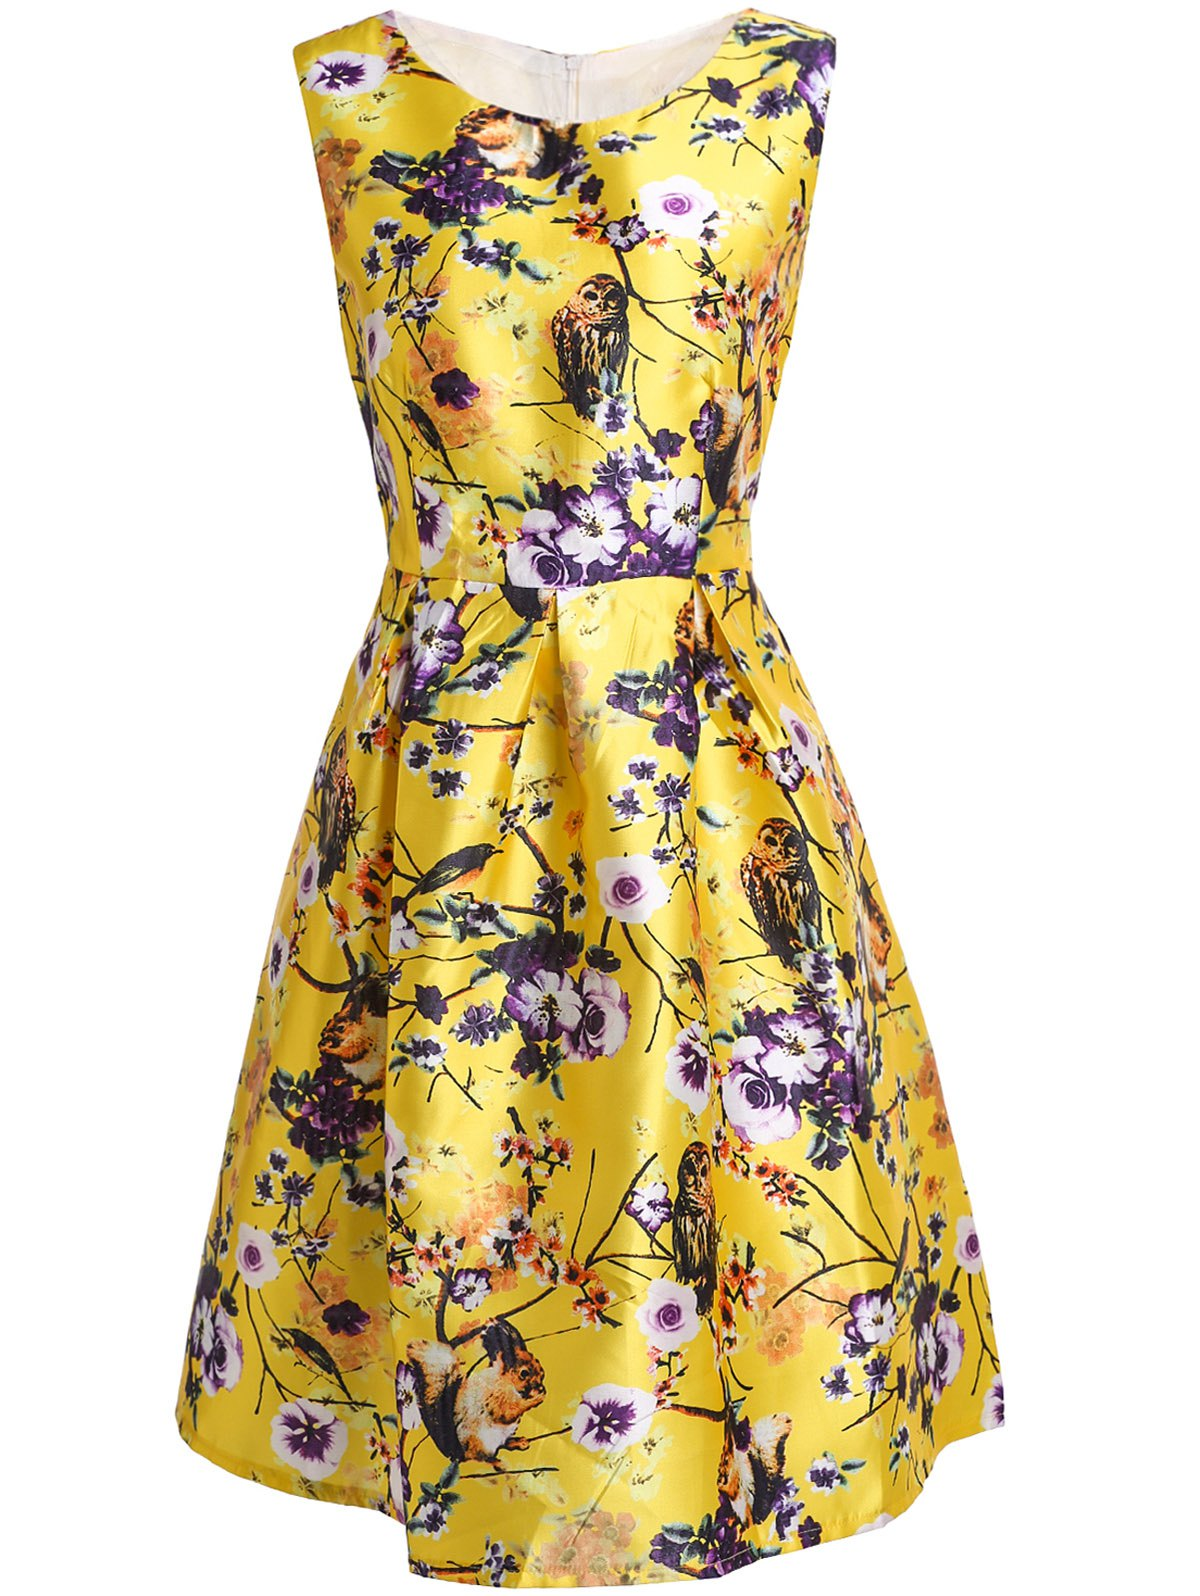 Stylish Flower and Birds Print Slash Neck Sleeveless Dress For Women